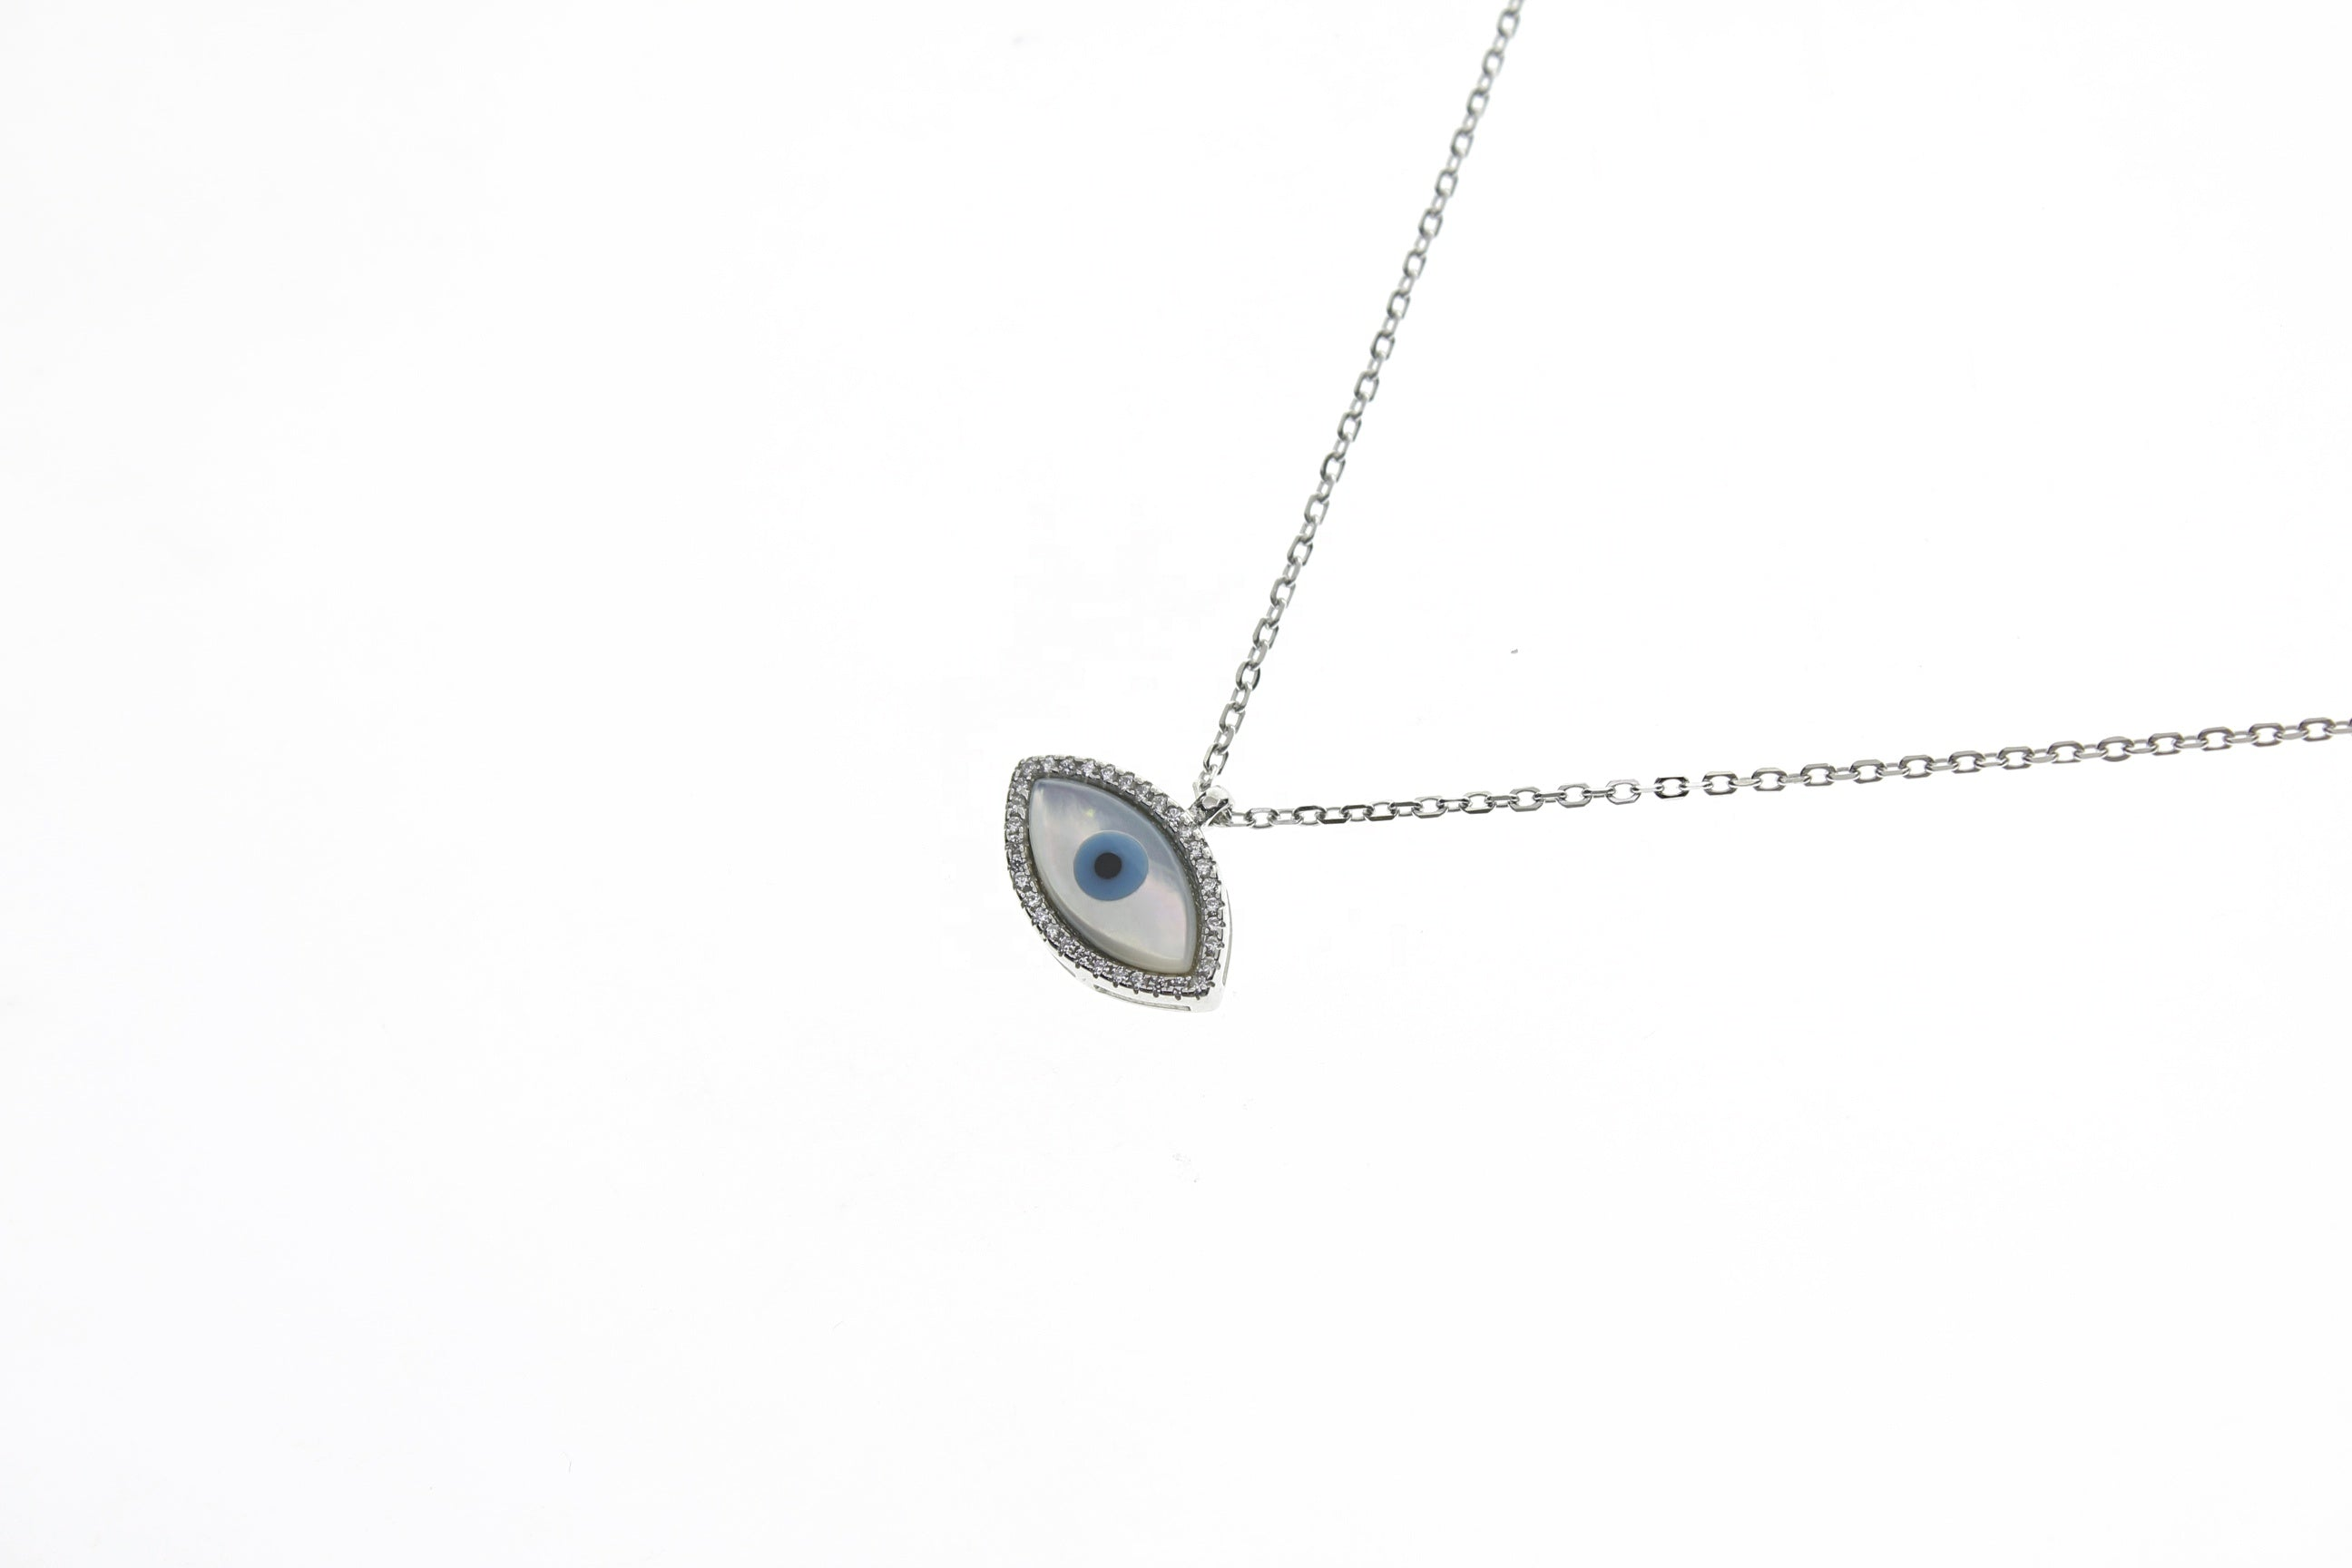 Soteria Evil Eye - NEW ARRIVAL!